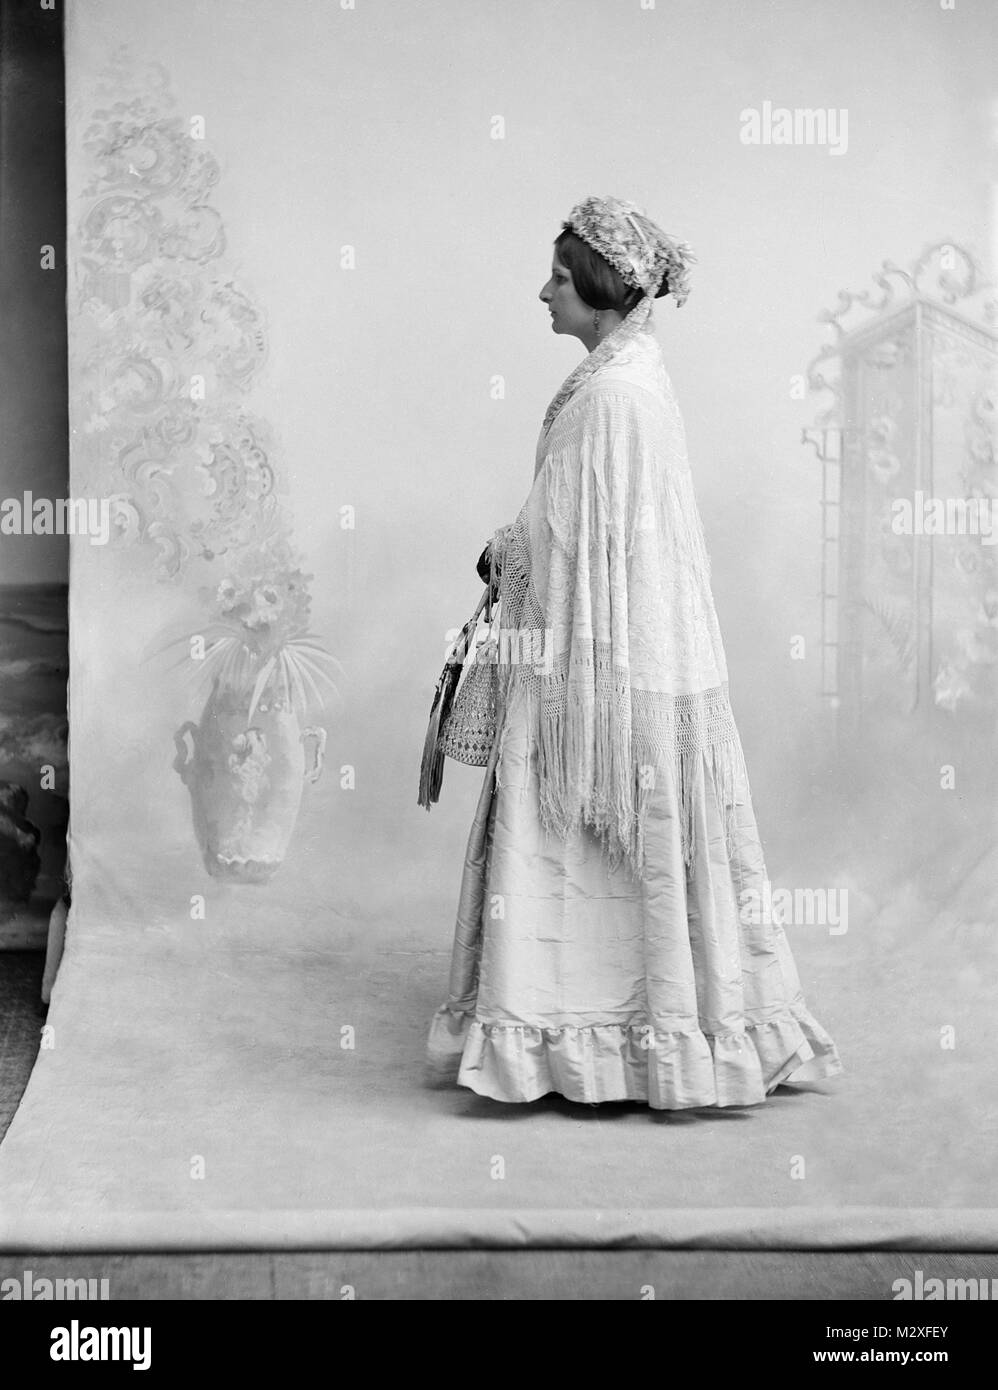 Studio shot of a single woman, ca. 105. - Stock Image